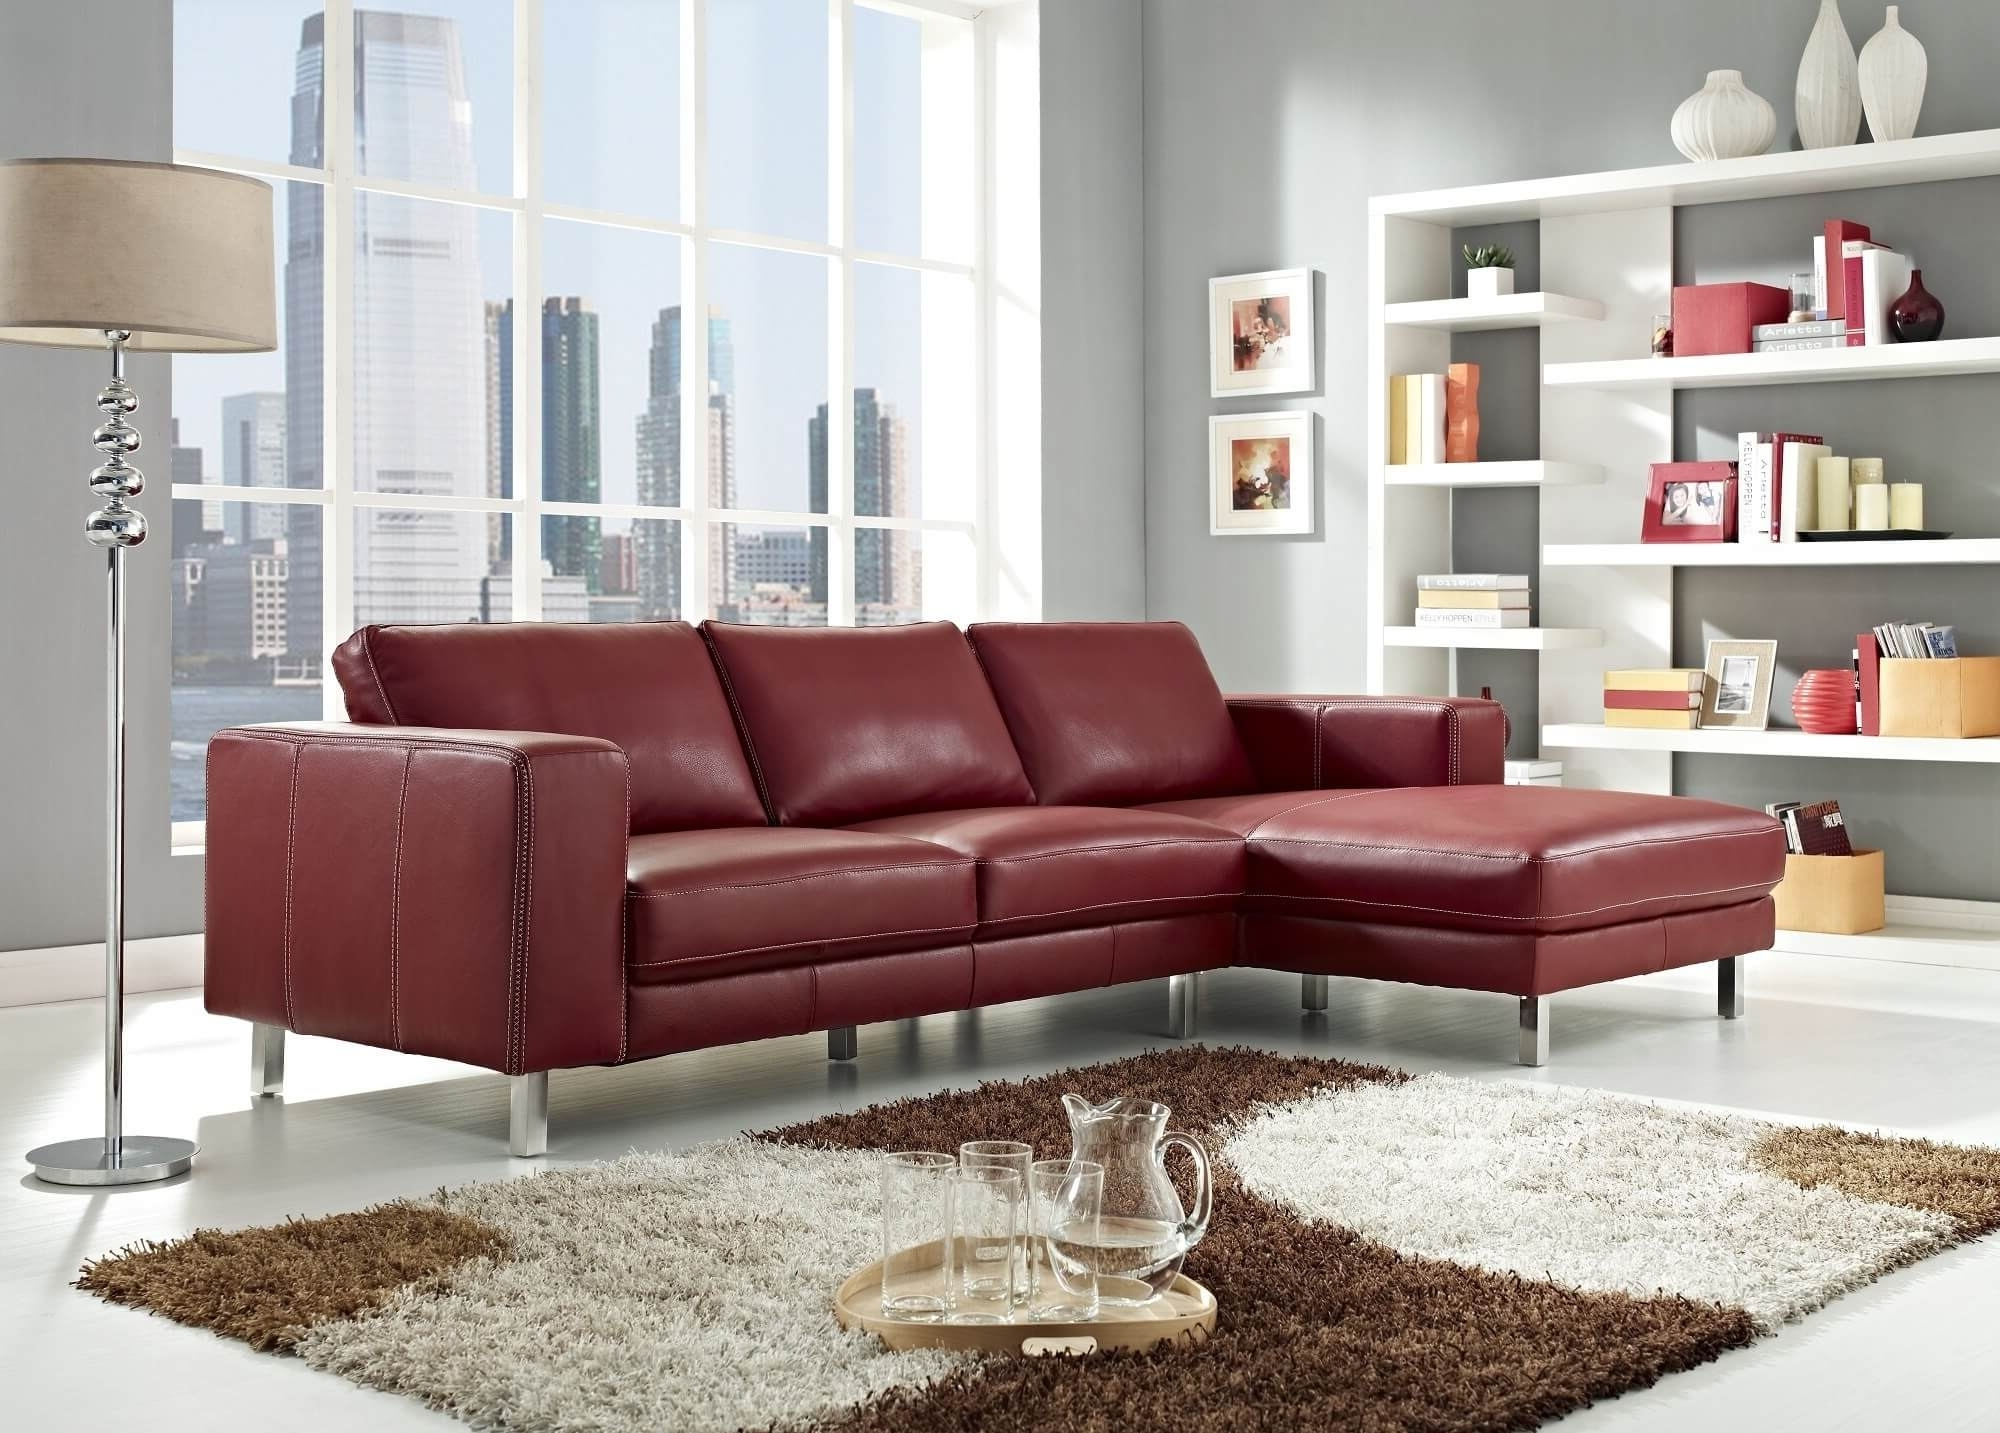 Newest Red Leather Sectionals With Chaise With Regard To Stylish Modern Red Sectional Sofas (View 6 of 20)